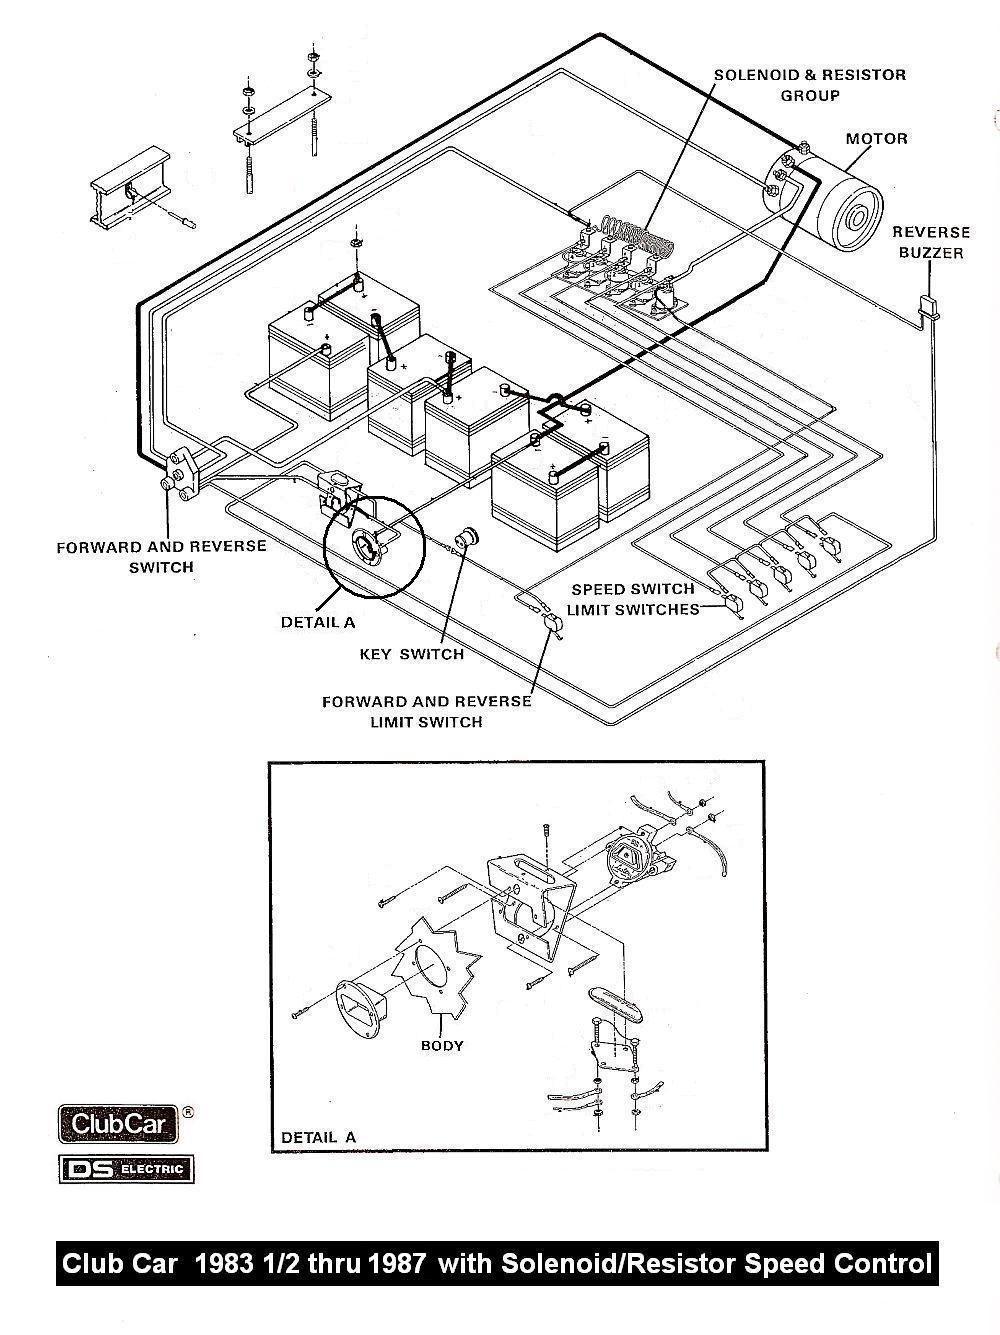 0e8d045370be7682b159825224221faa vintagegolfcartparts com *freezer & crock pot* pinterest gas club car golf cart wiring diagram at cita.asia